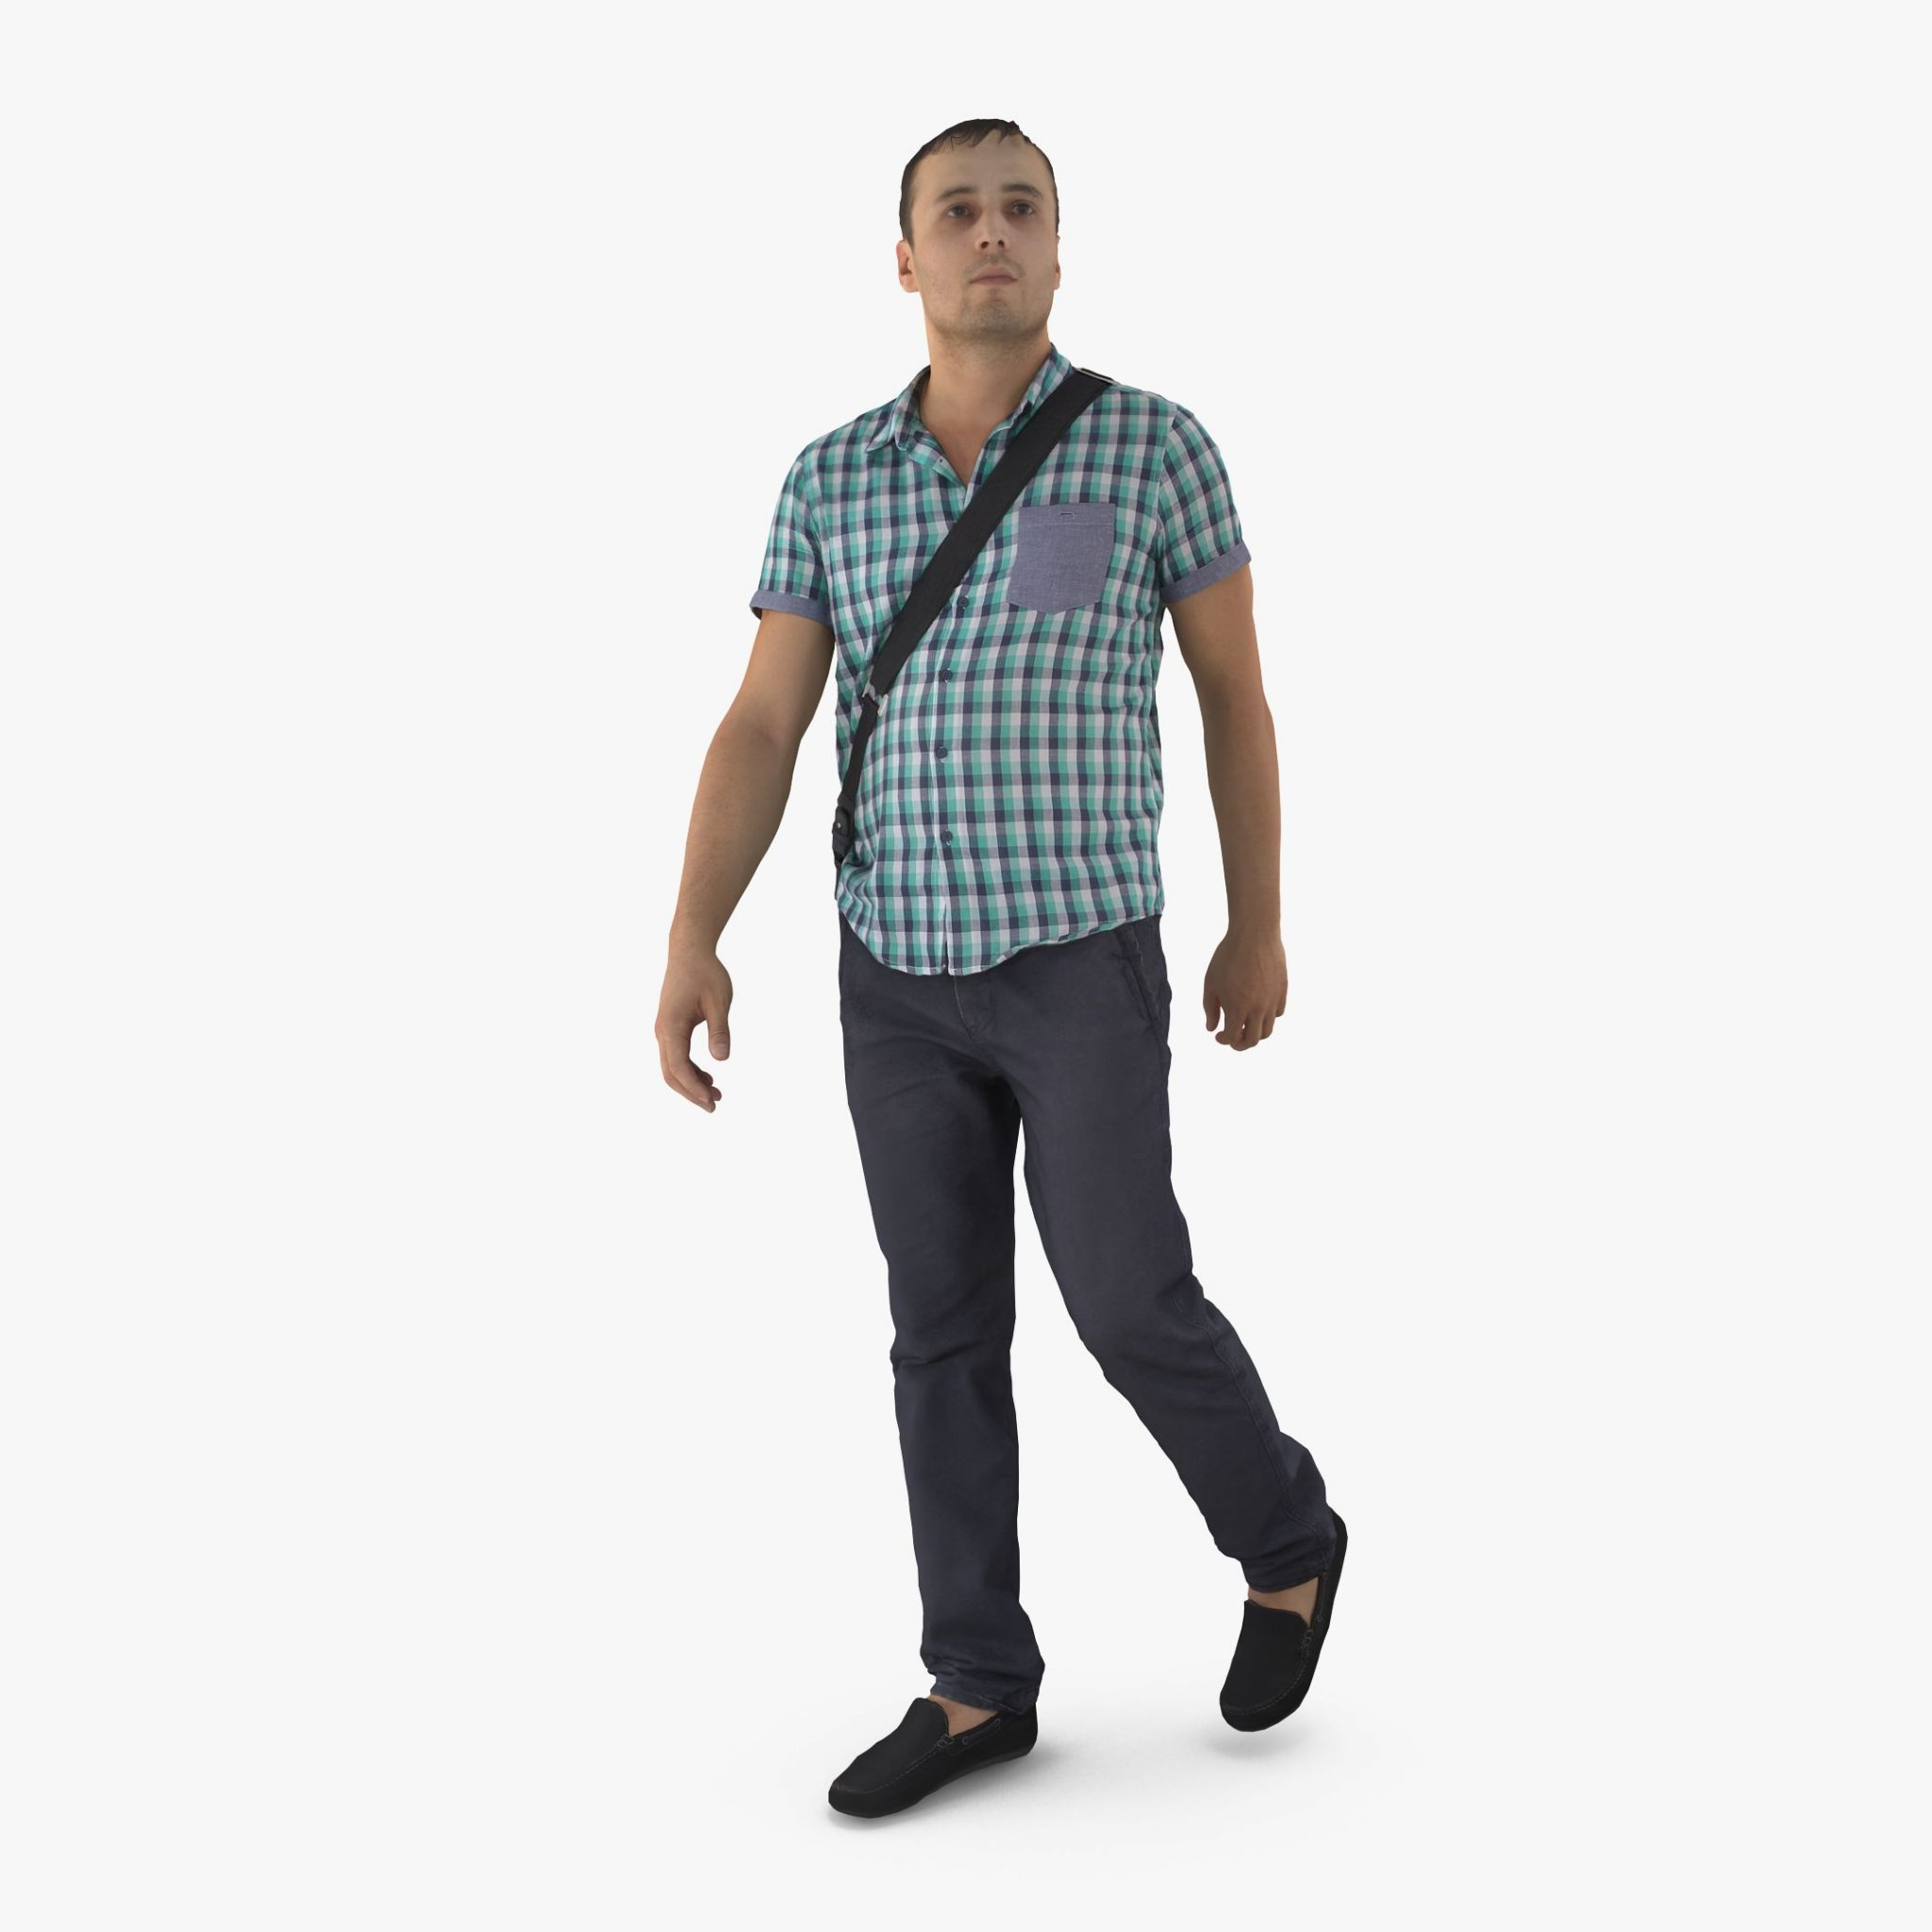 City Man with Bag 3D Model | 3DTree Scanning Studio